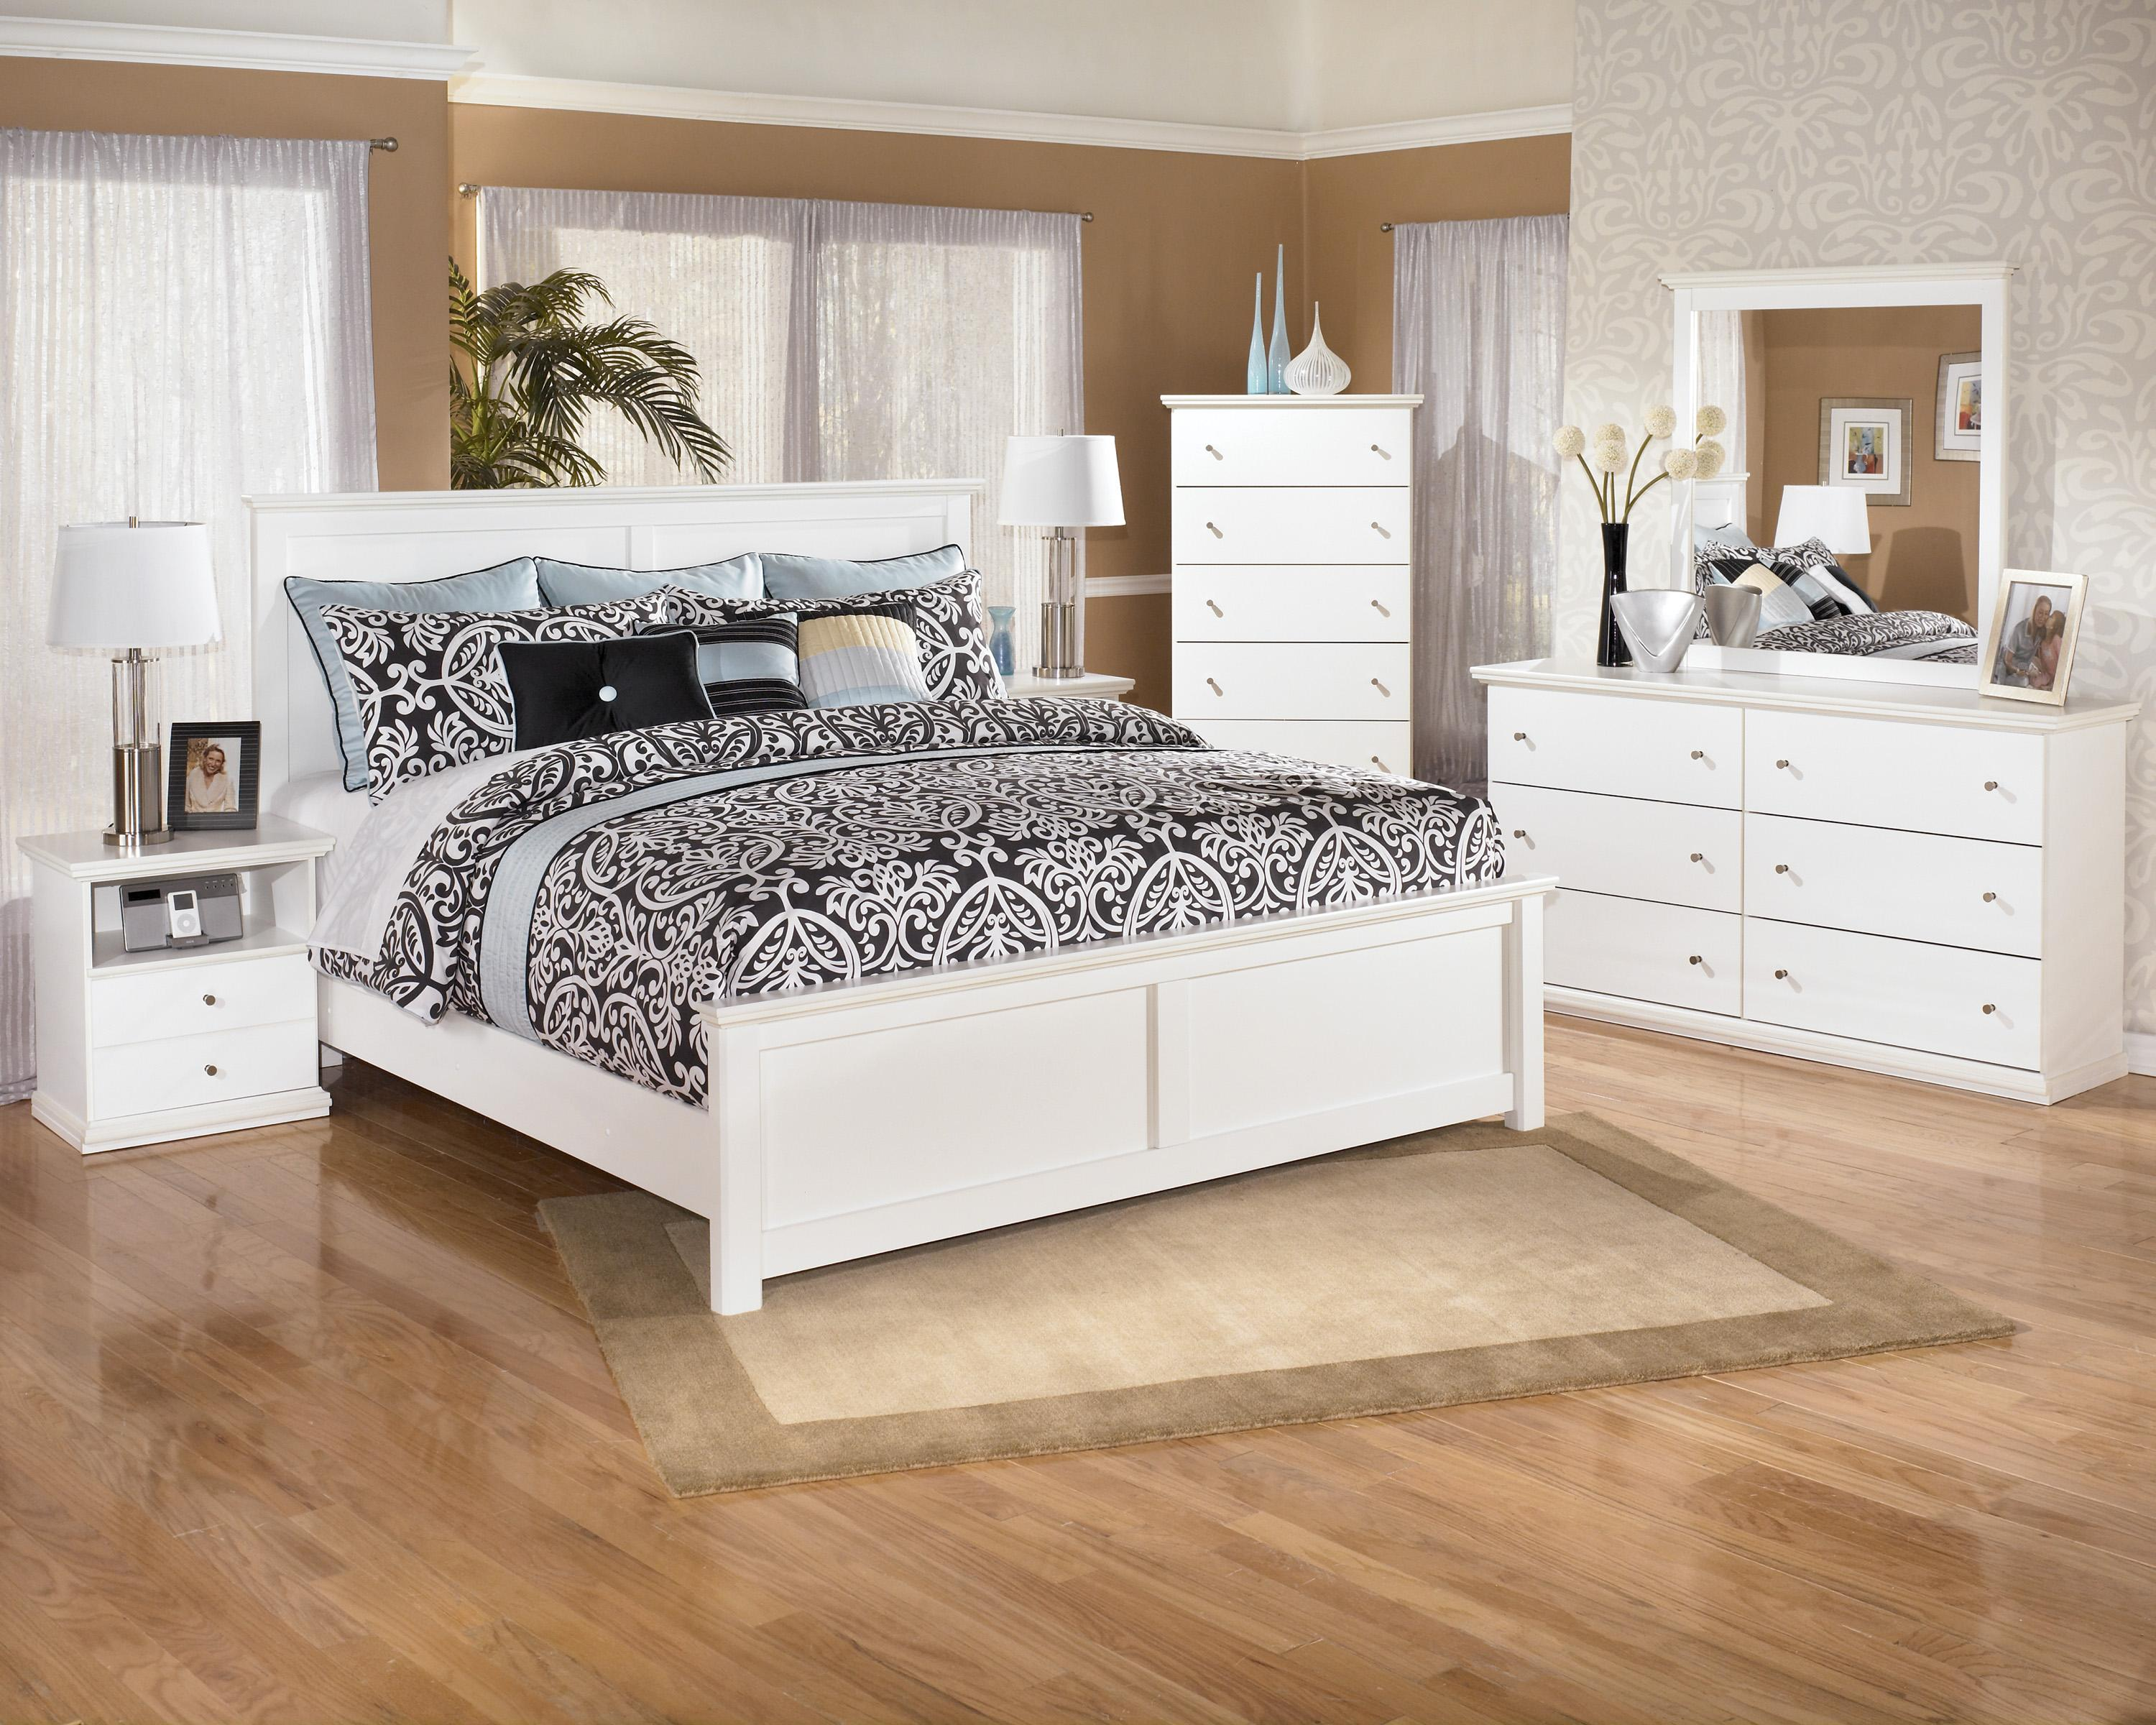 Signature Design By Ashley Bostwick Shoals Full Bedroom Group Lindy S Furniture Company Groups